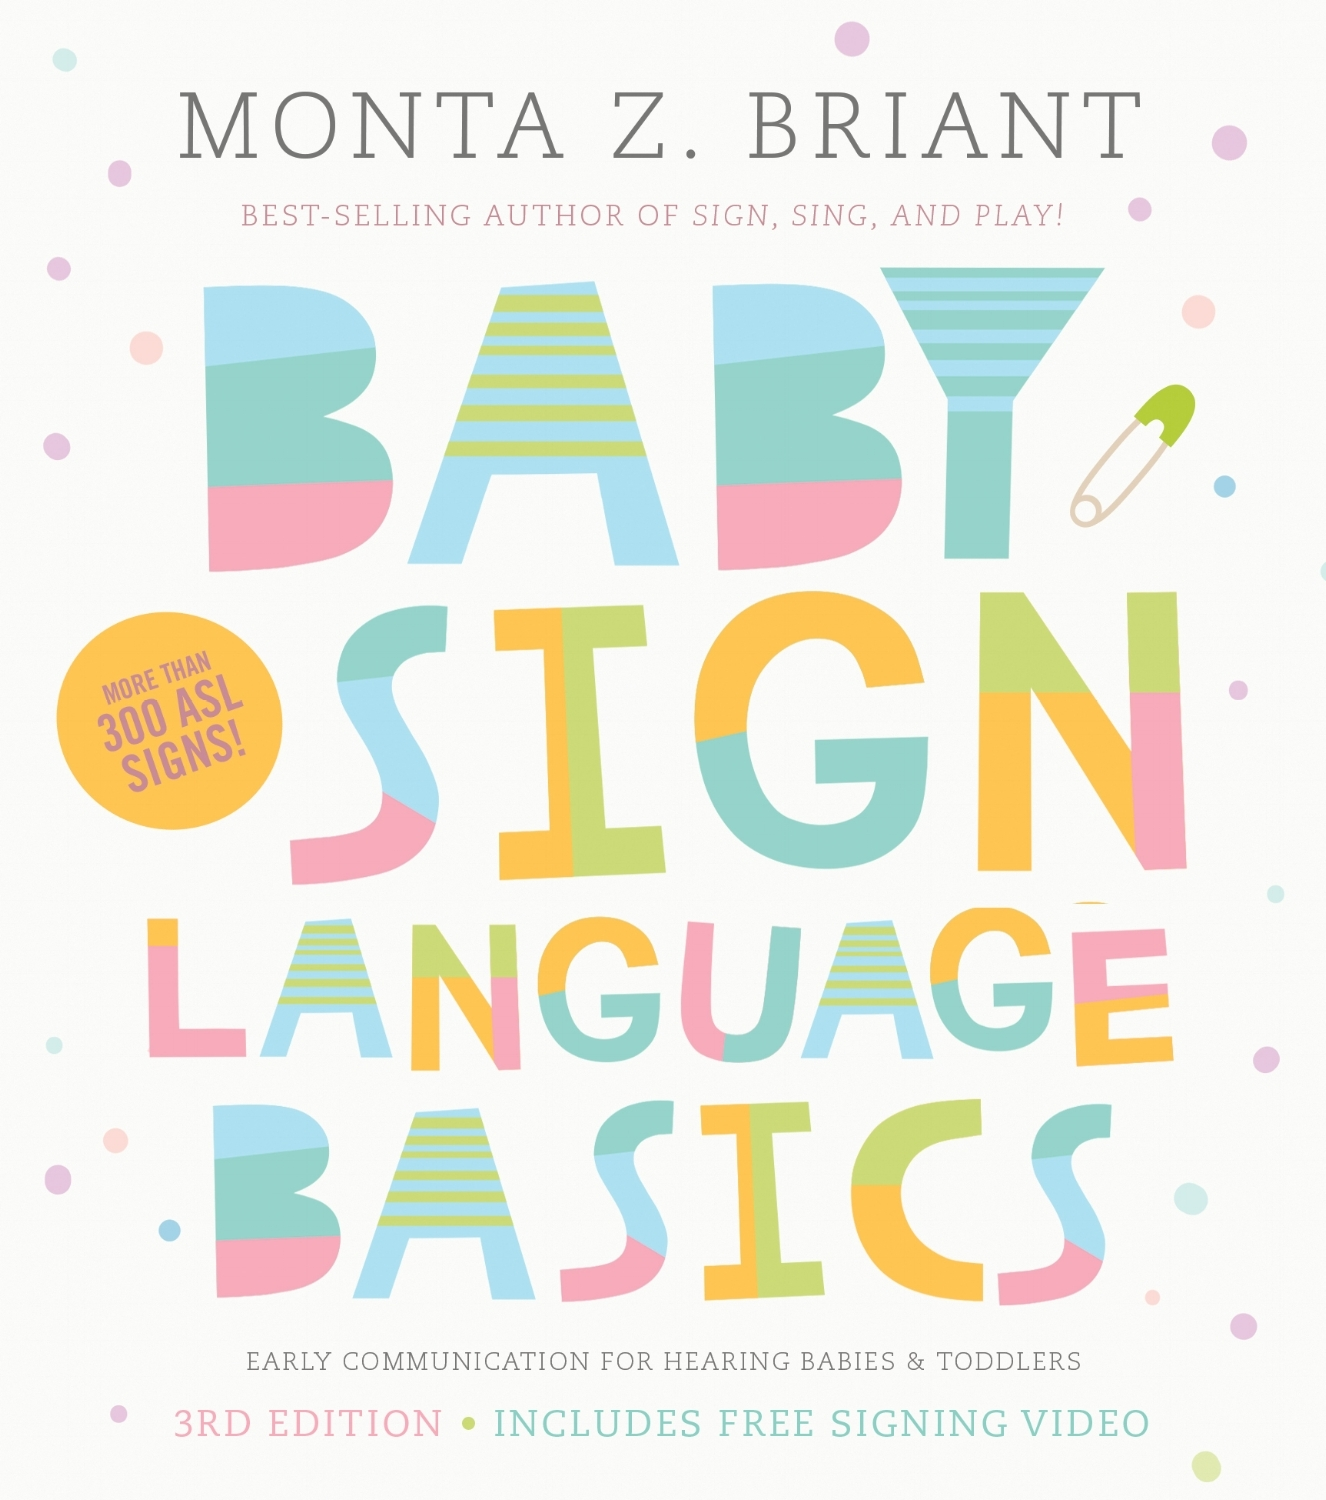 Baby Sign Language Basics 2018 Expanded Edition, with streaming video by Monta Z. Briant  This newly expanded edition provides more than 300 American Sign Language (ASL) signs, illustrated with the same clear, easy-to-understand photos as well as new information and streaming video enabling parents to see the signs come alive...   READ MORE/ BUY NOW